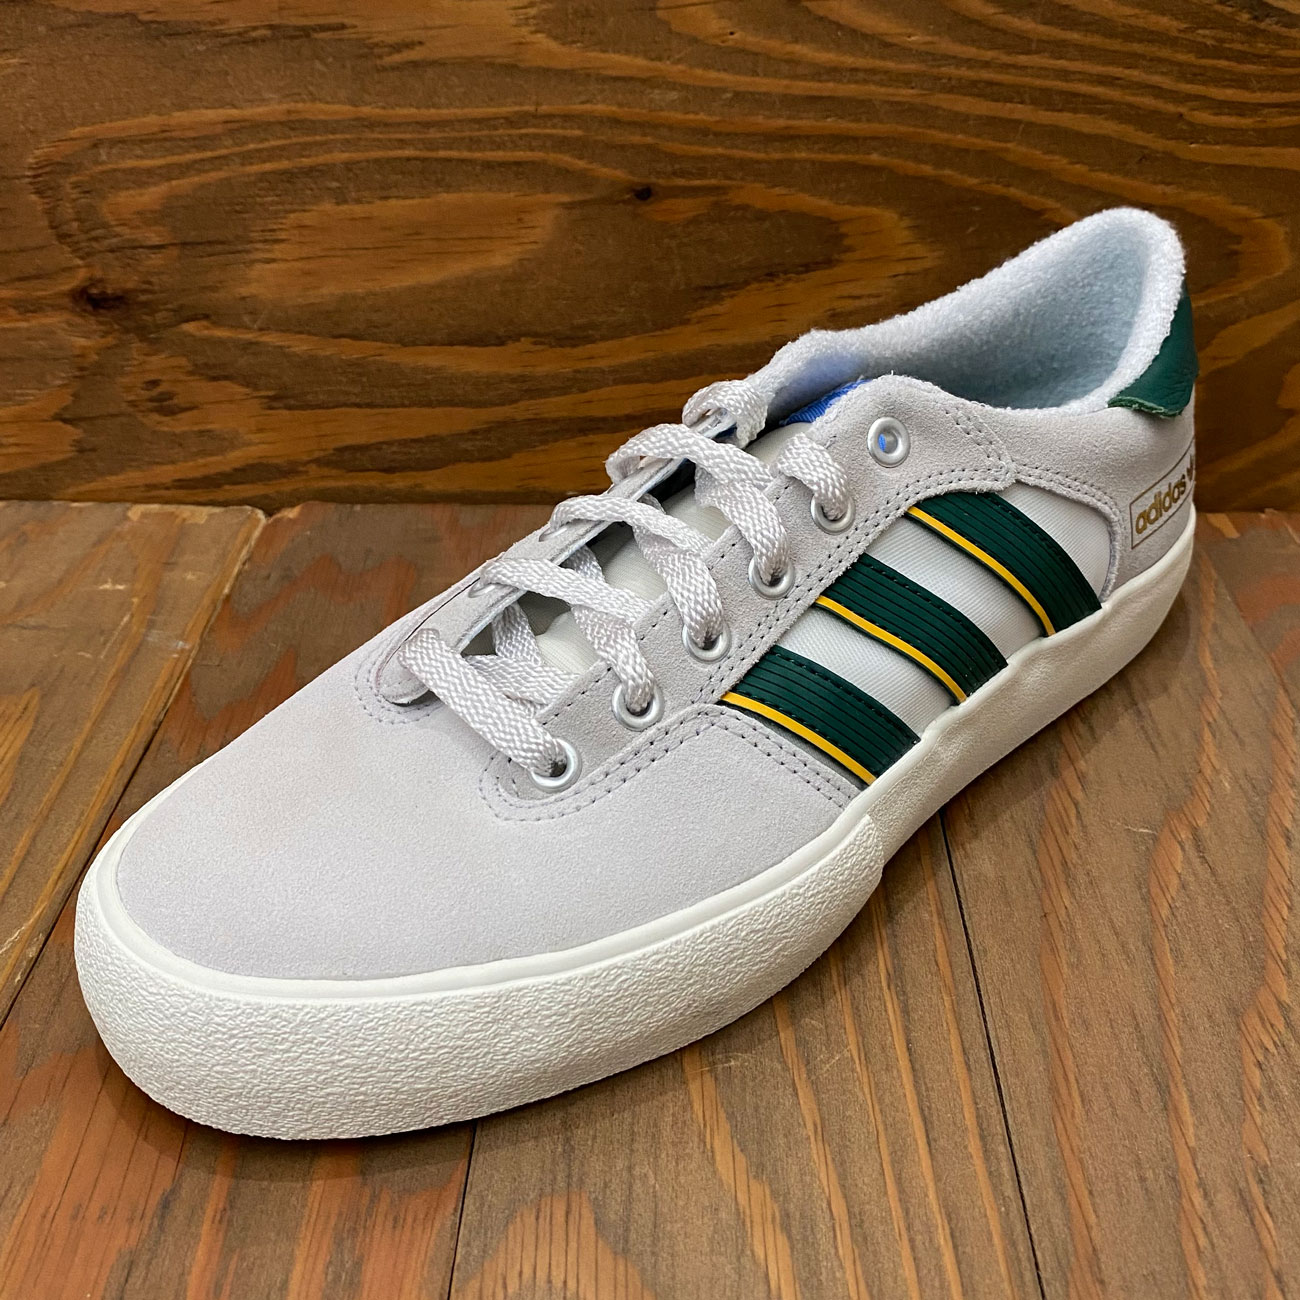 ADIDAS MATCHBREAKSUPER WHITE/GREEN/YELLOW